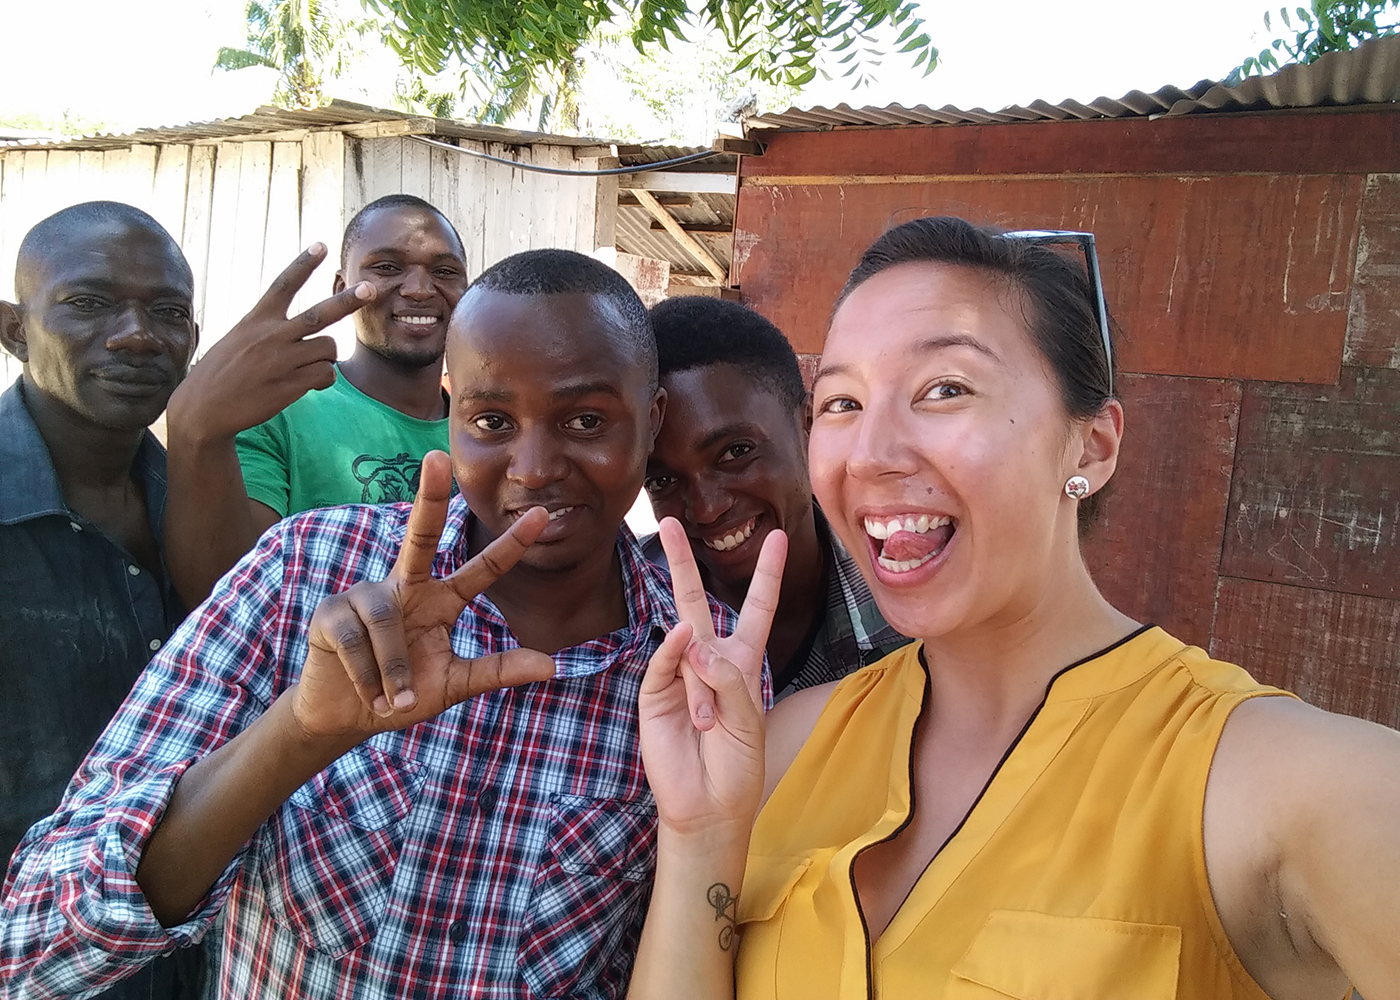 New friends in Kigamboni, a neighbourhood of Dar. The photo was taken after we did a needs assessment with their youth group.